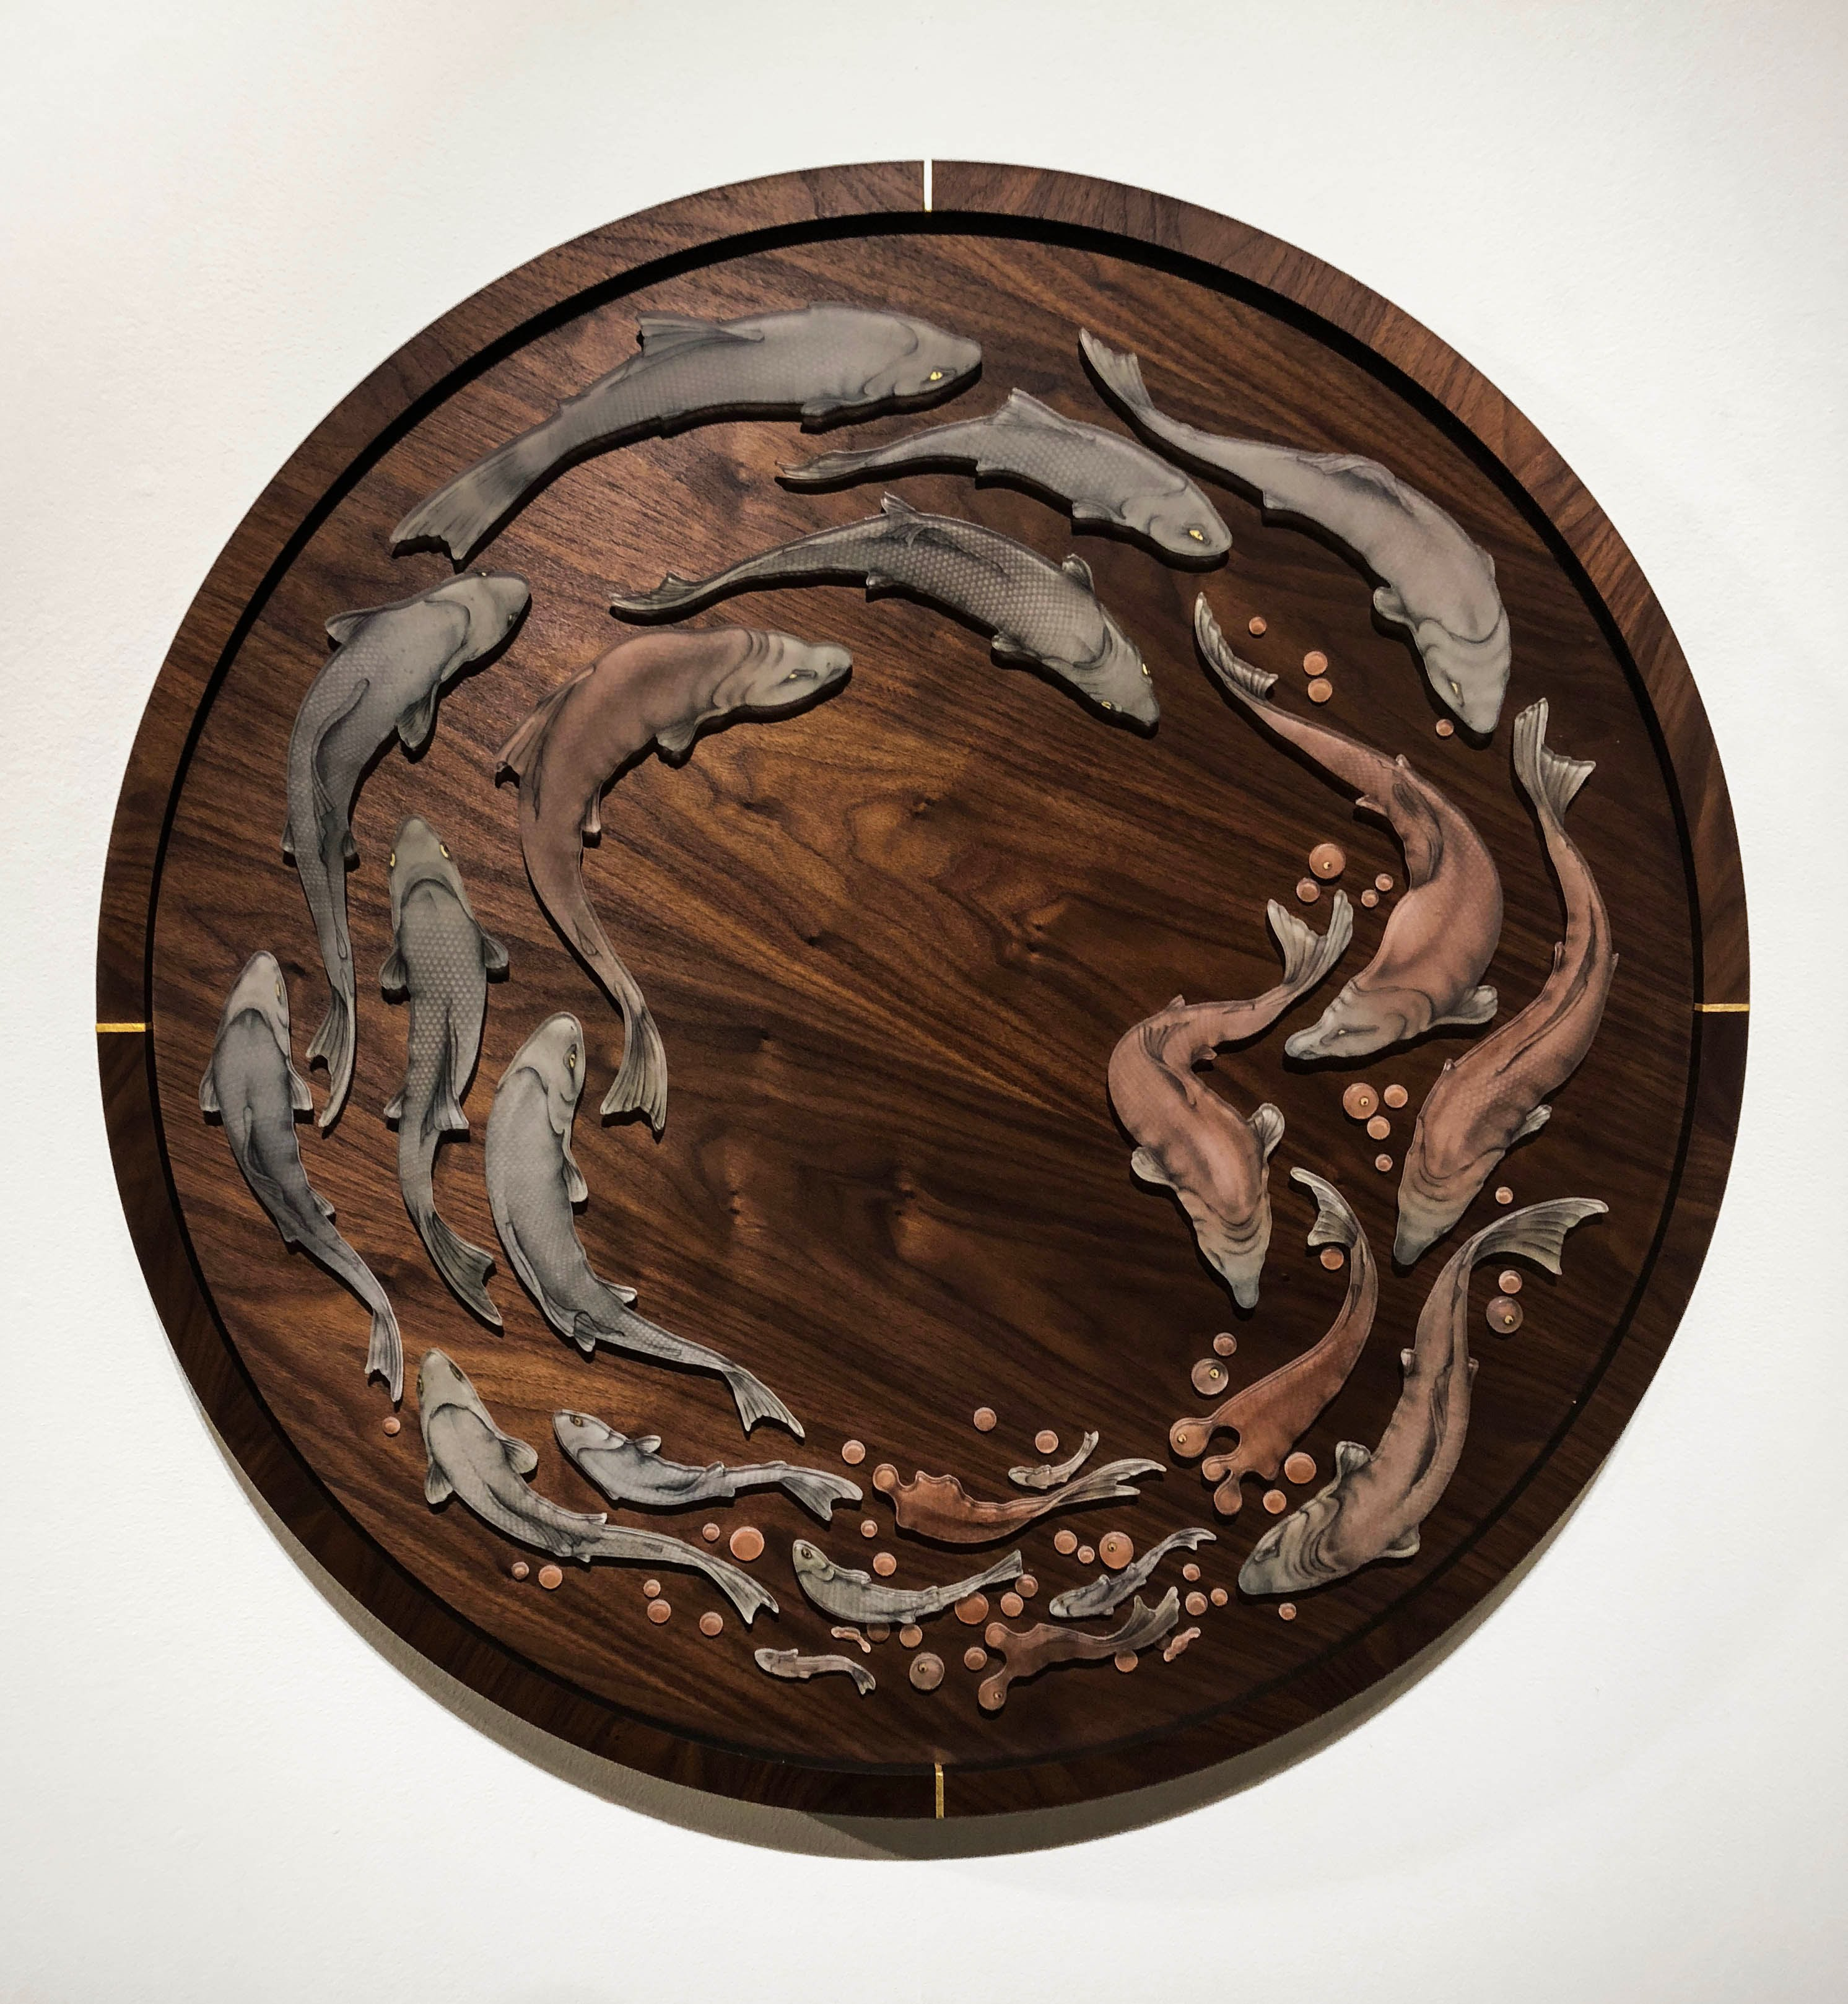 Suzanne Head glass drawing on walnut veneer